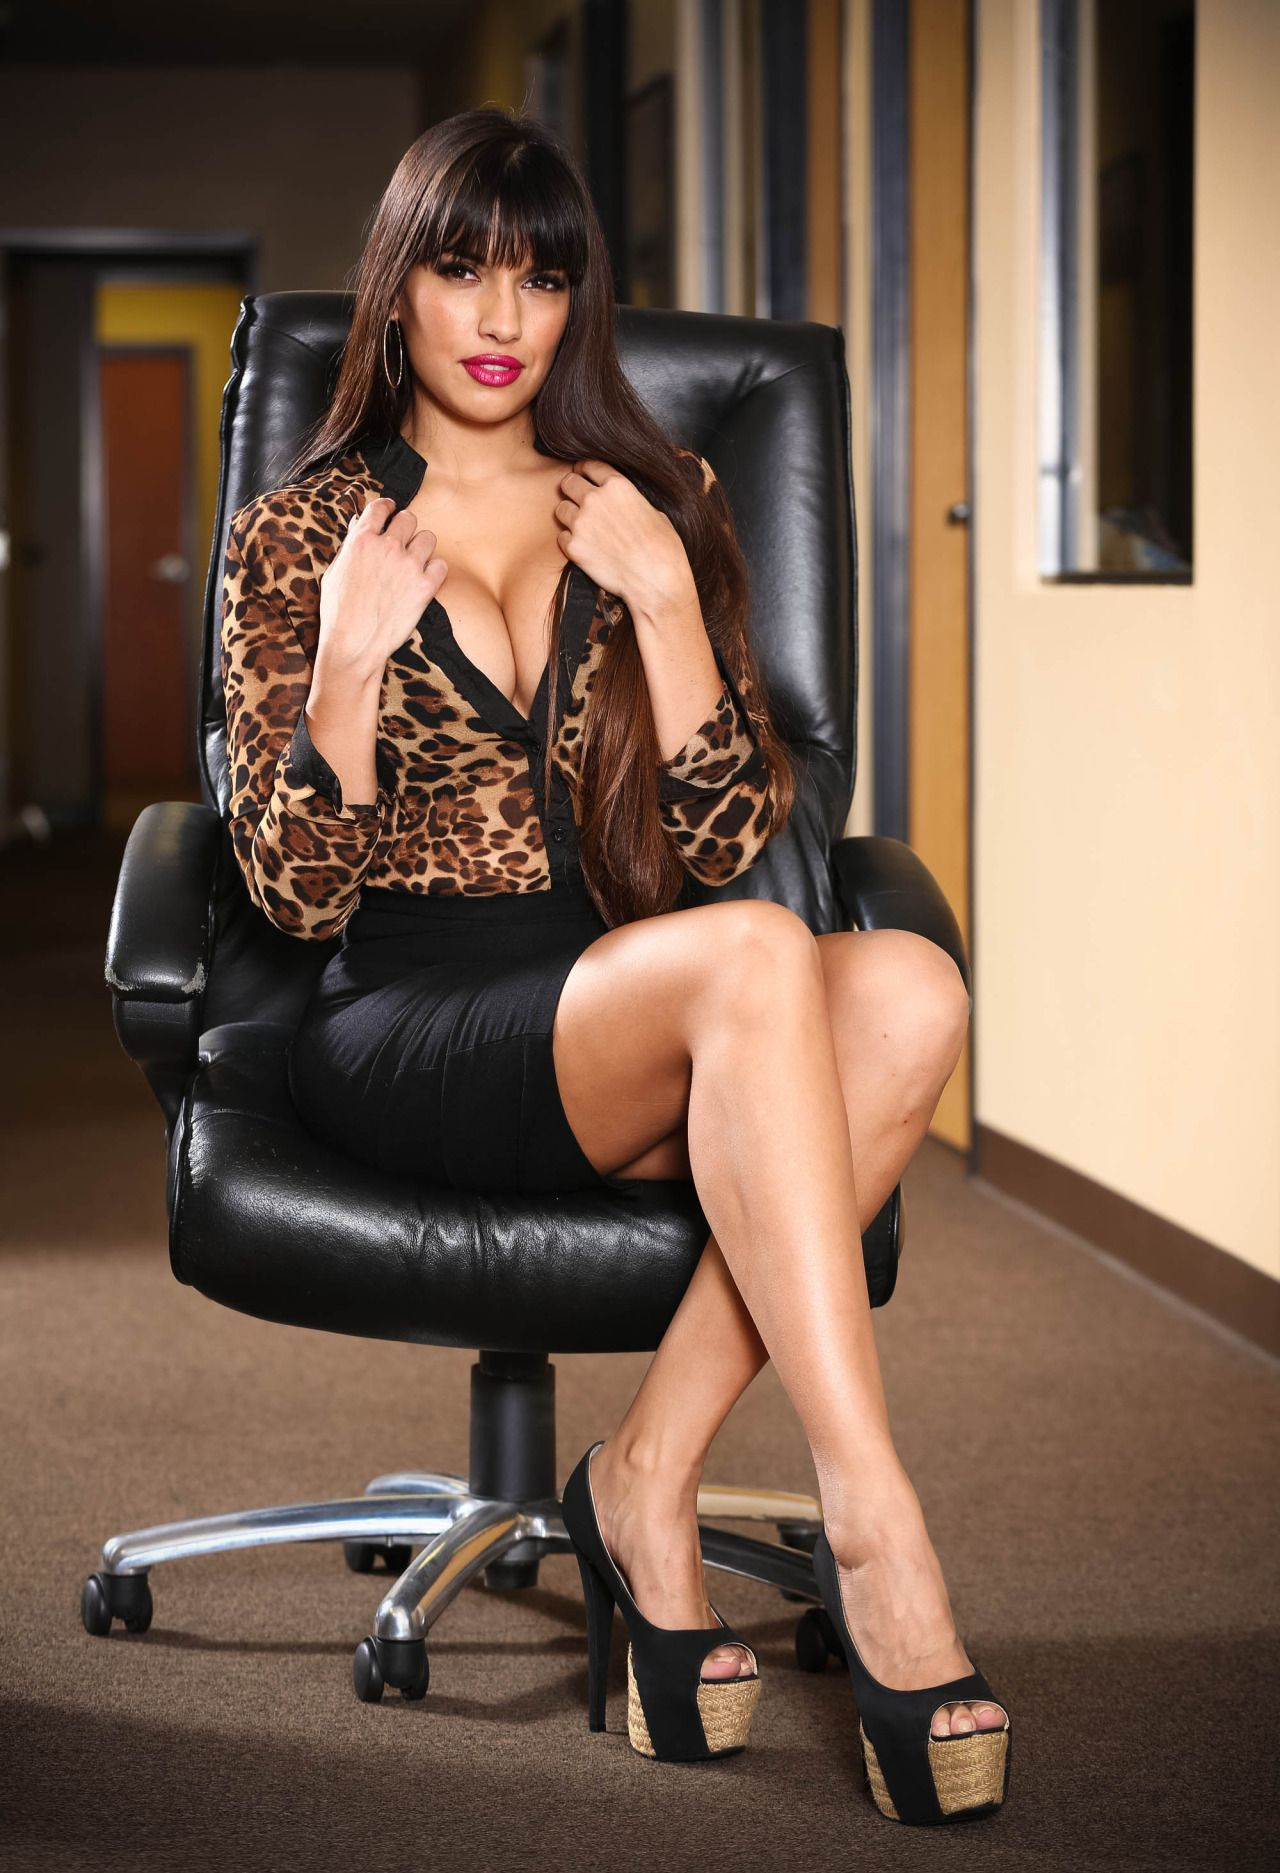 Latina solo model Mercedes Carrera strips down to high heels only on patio № 676921 загрузить